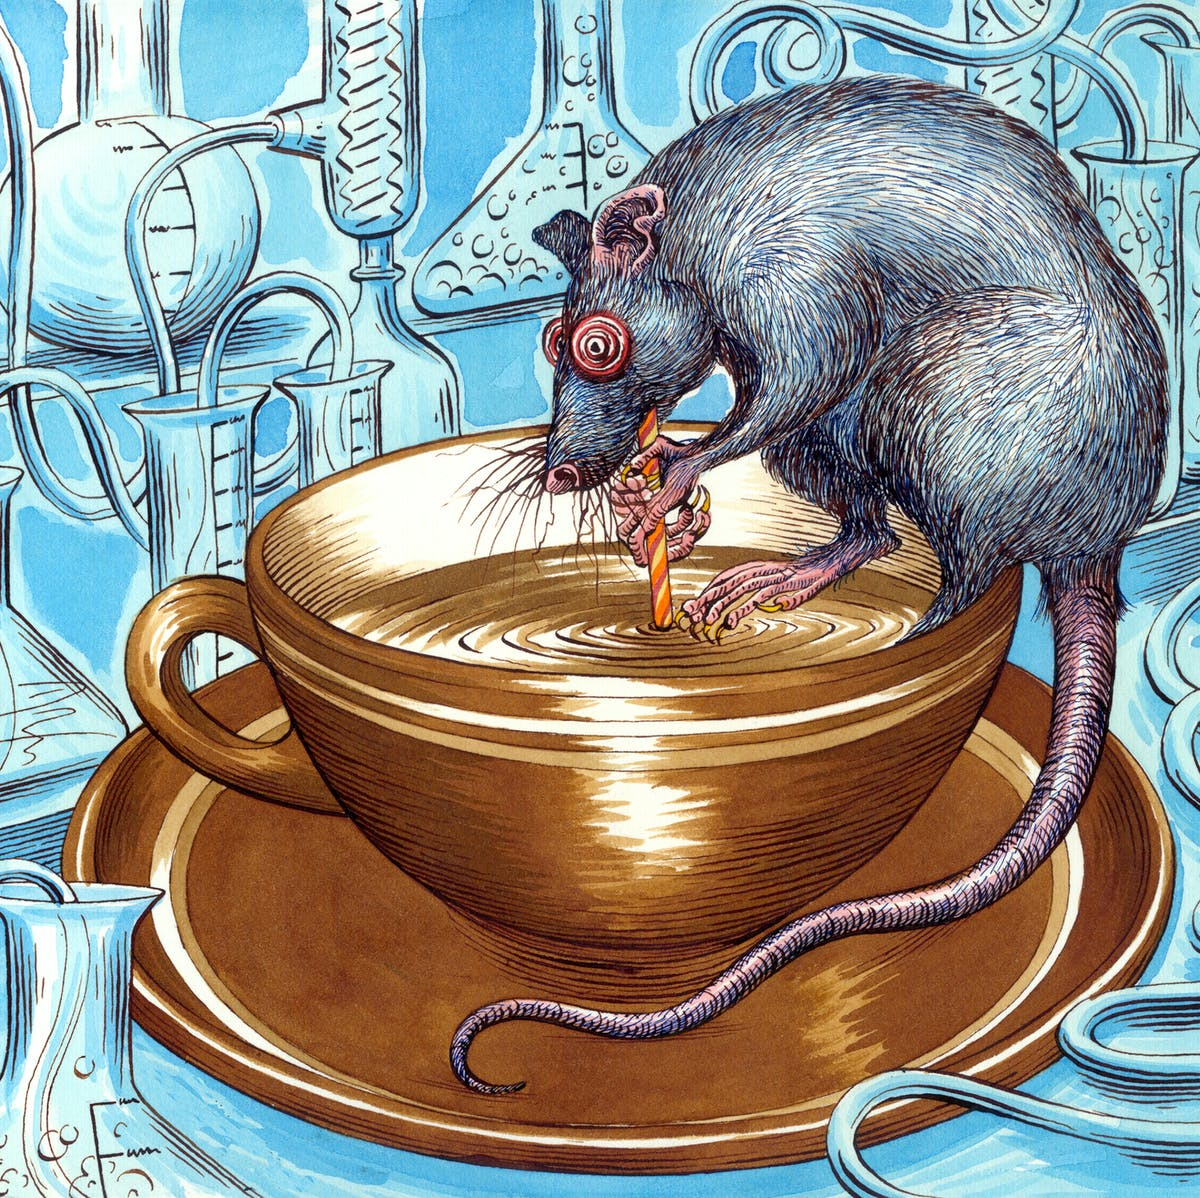 Coffee Rat reminds us what rodents can teach science about caffeine